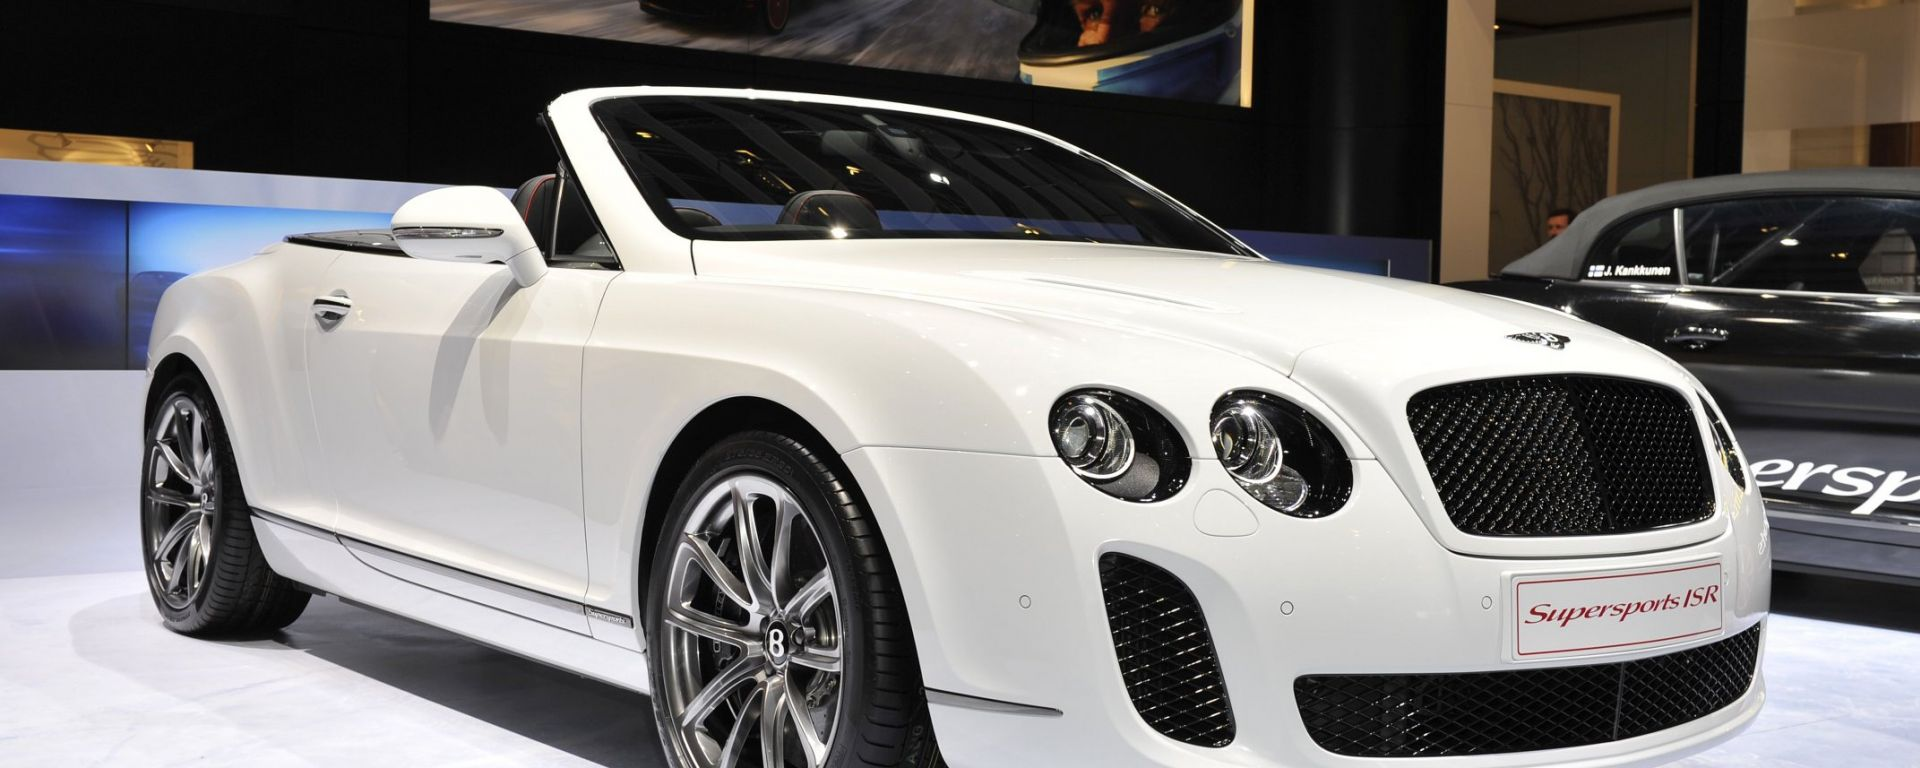 "Bentley Continental Supersports ""Ice Speed Record"""